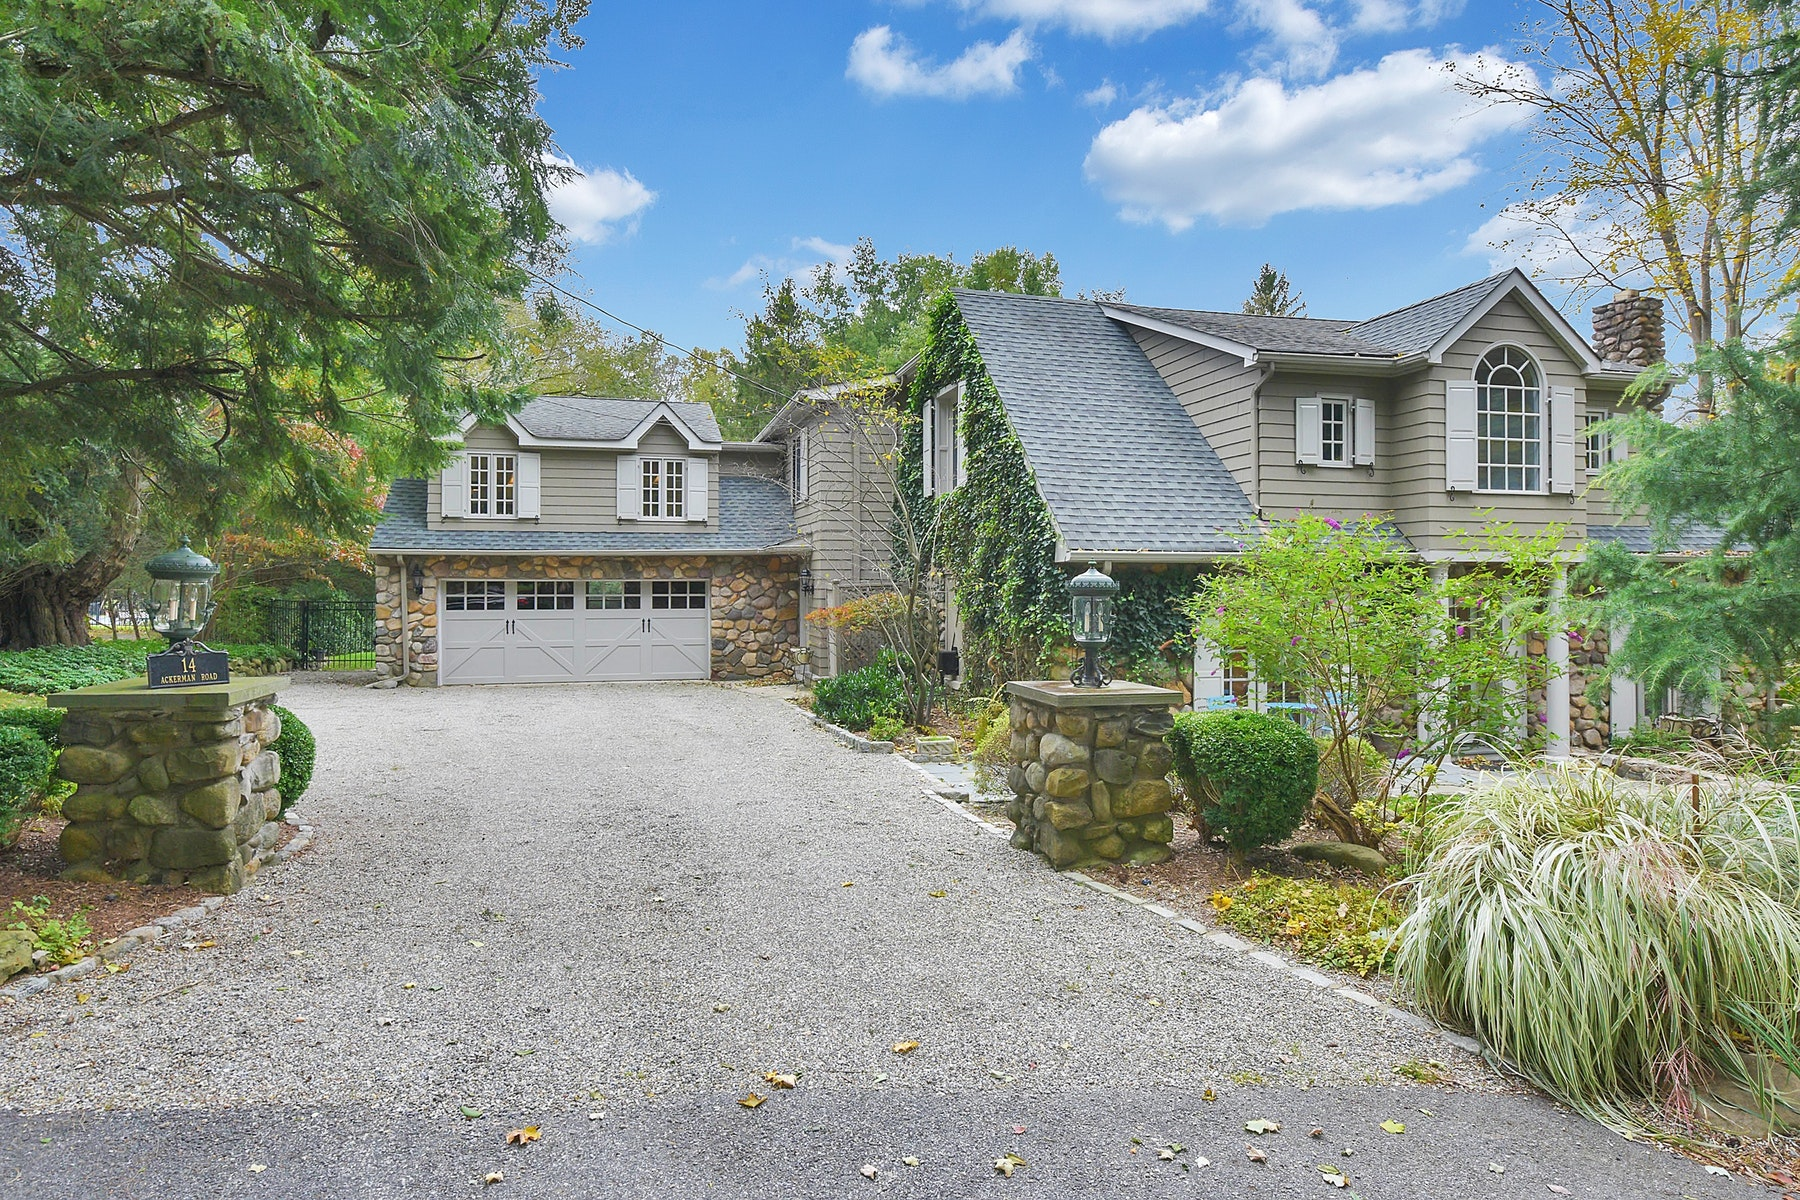 Single Family Home for Sale at Charming Carriage House 14 Ackerman Rd Saddle River, New Jersey 07458 United States